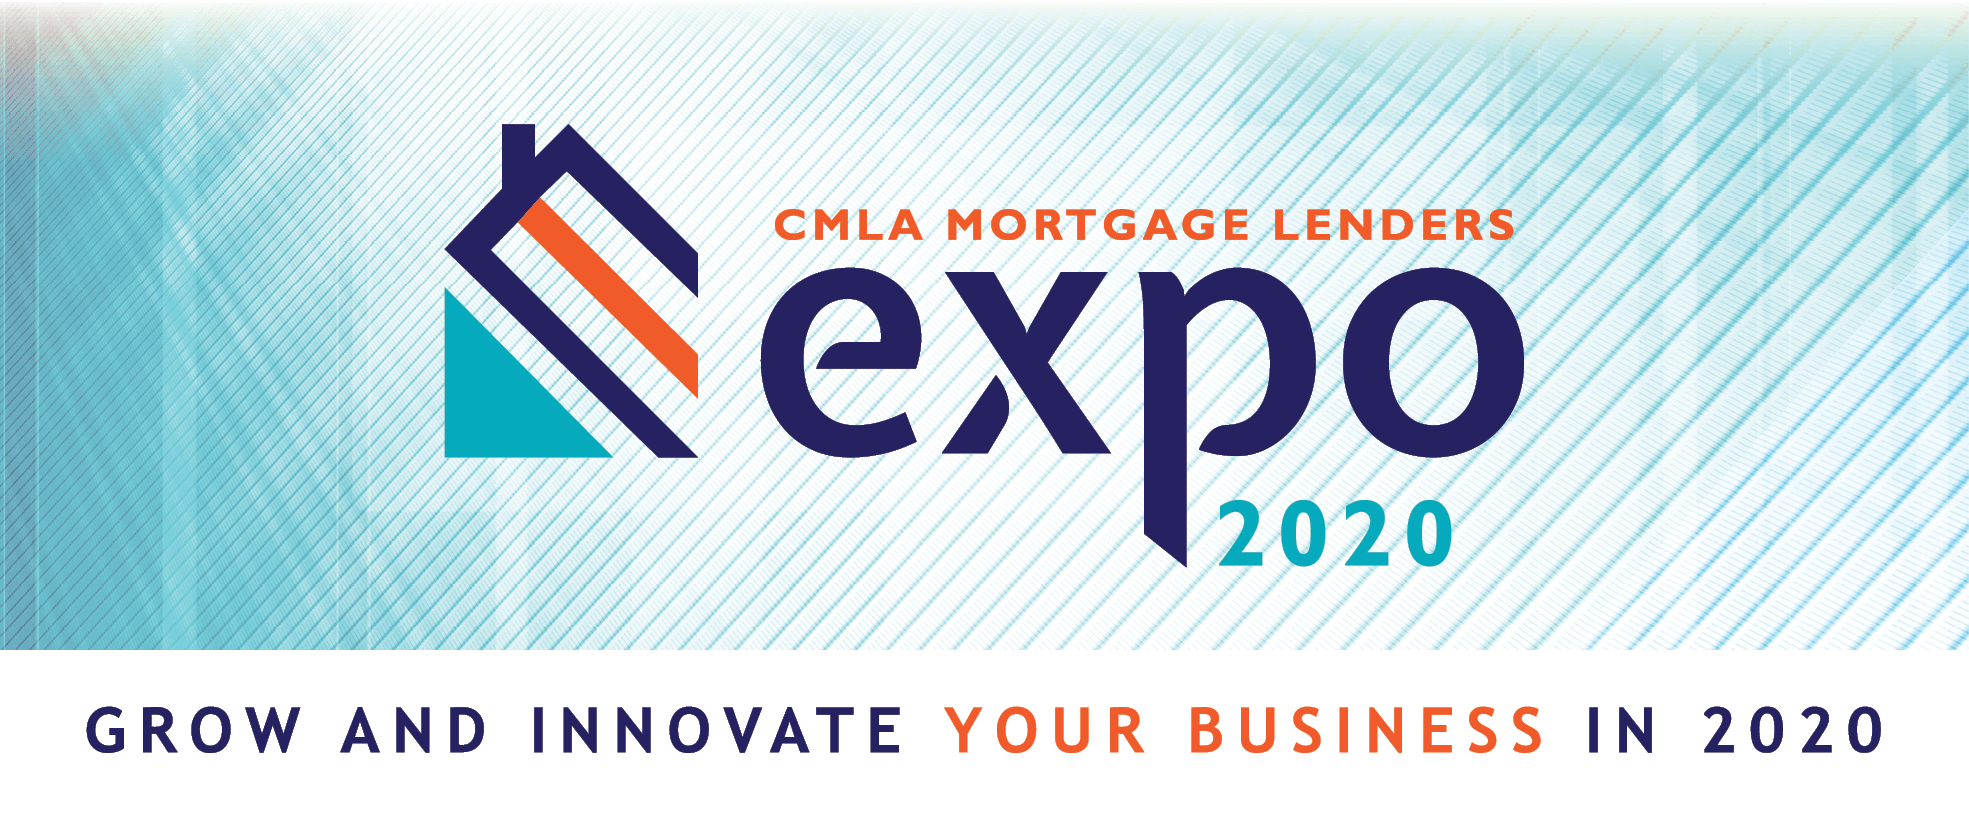 2020 CMLA Mortgage Lenders Expo Save the Date